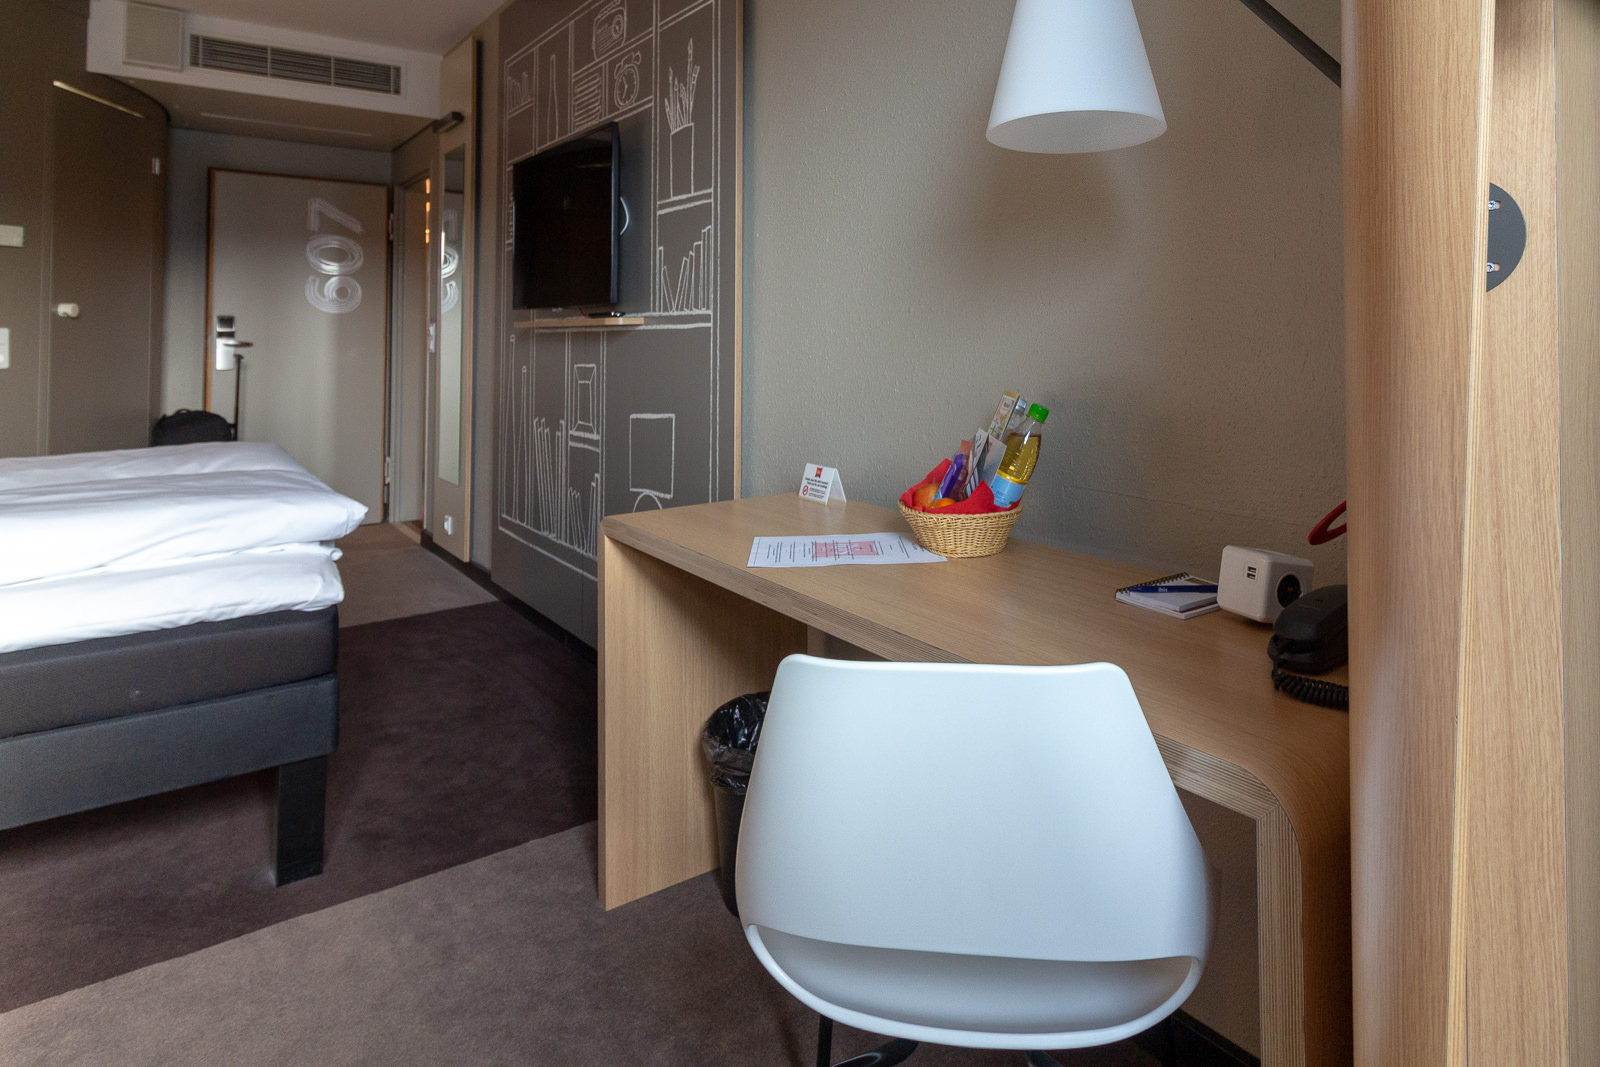 ibis Hotel Wuppertal City